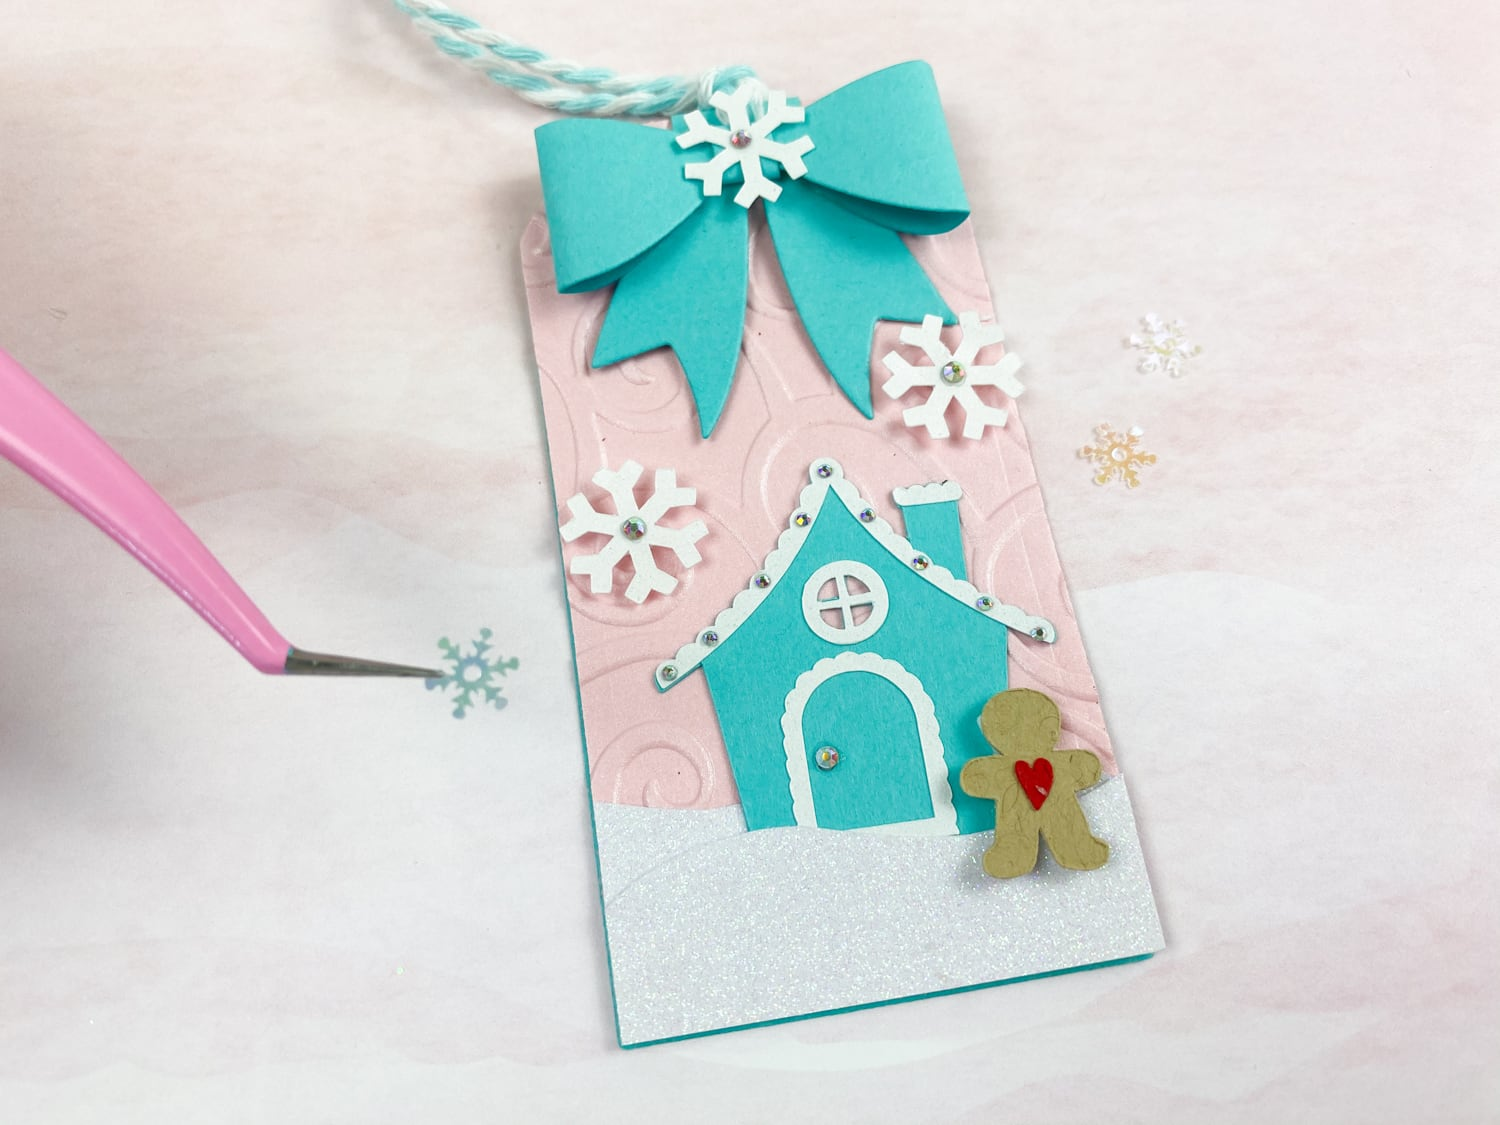 adding final embellishments to gingerbread house DIY tags